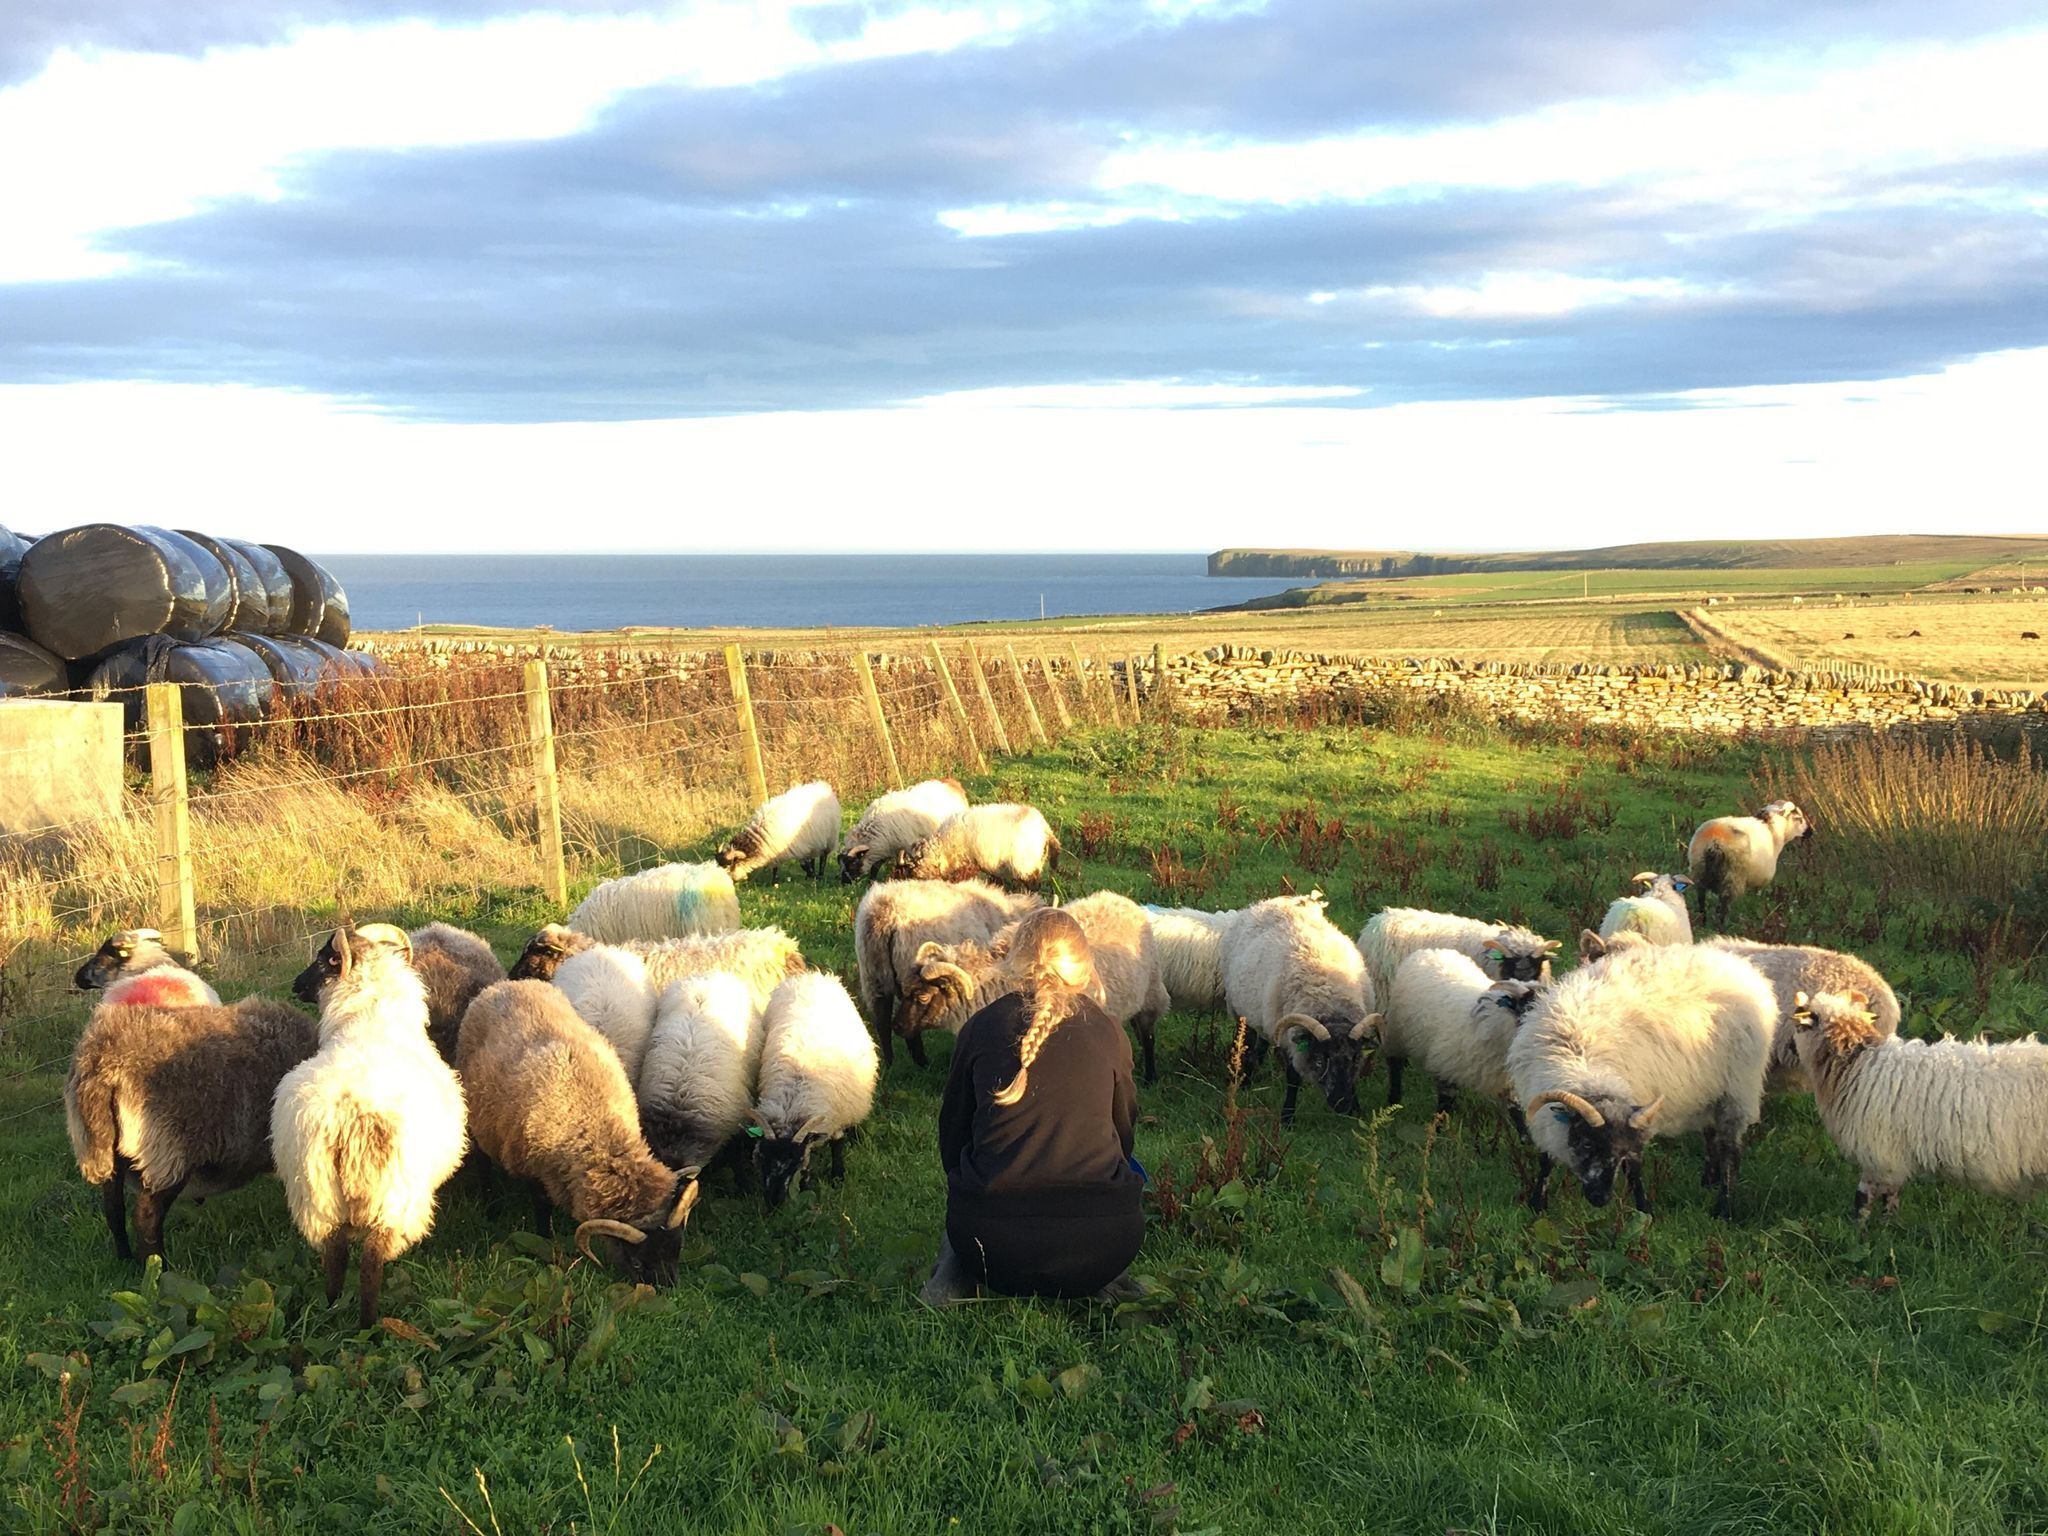 Ewes, gimmers and lambs at Airy Farm